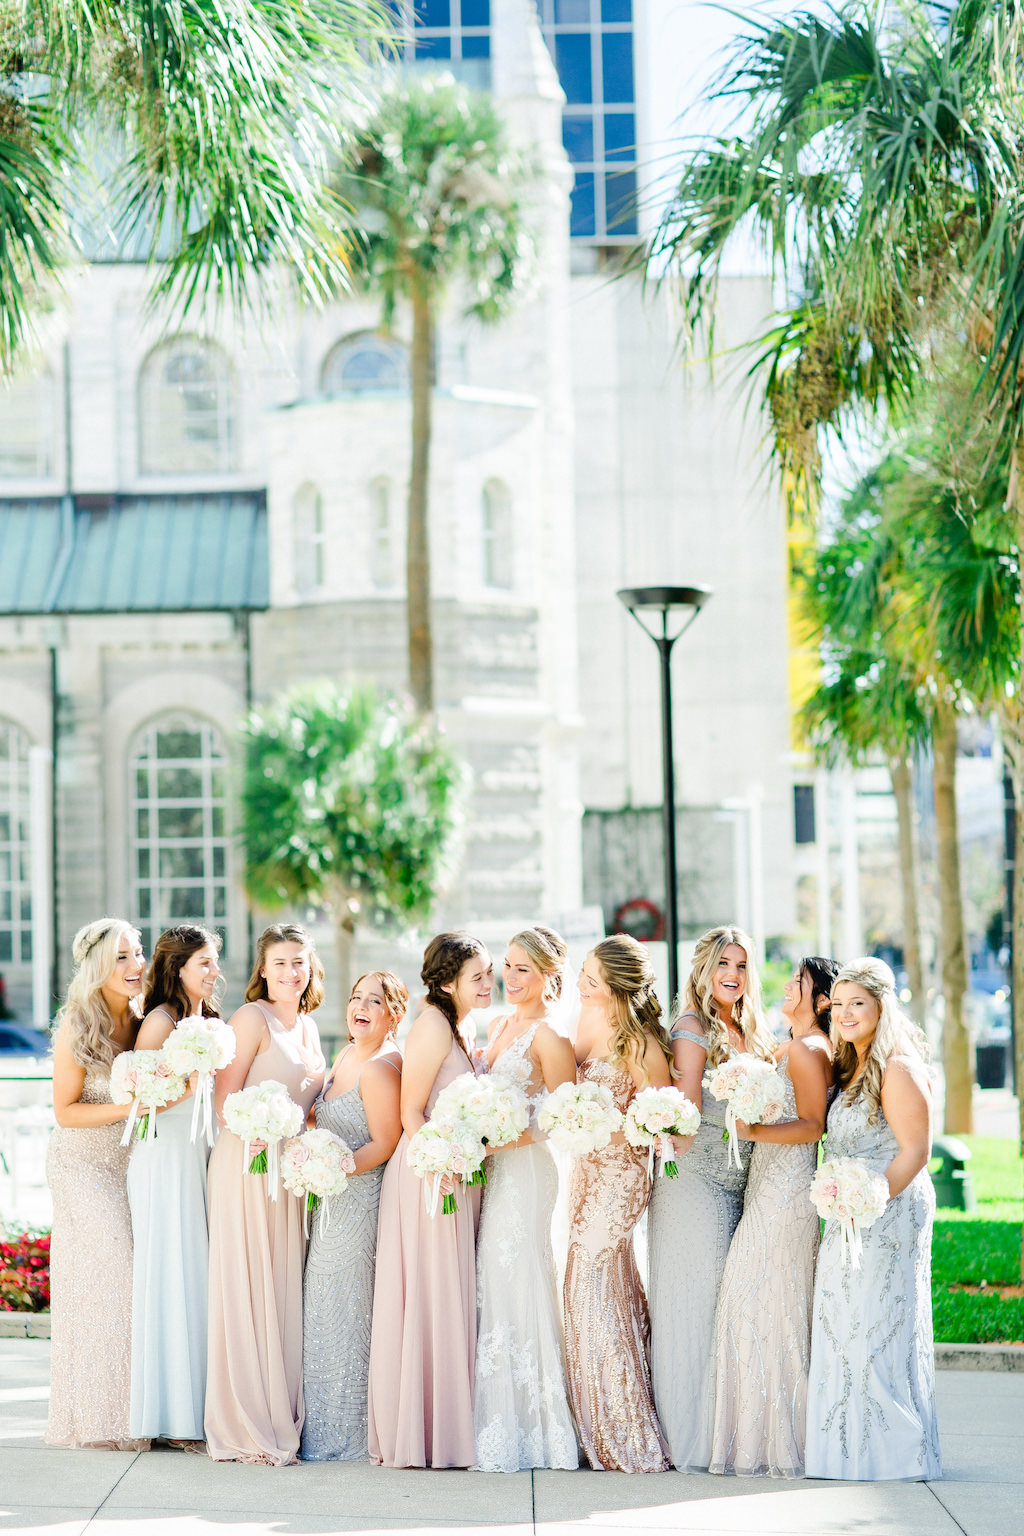 Downtown Tampa Outdoor Bride and Bridesmaids Bridal Party Wedding Portrait, Bridesmaids in Mismatched Blush Pink, Silver and Pale Blue Long Dresses with Ivory Floral Bouquets